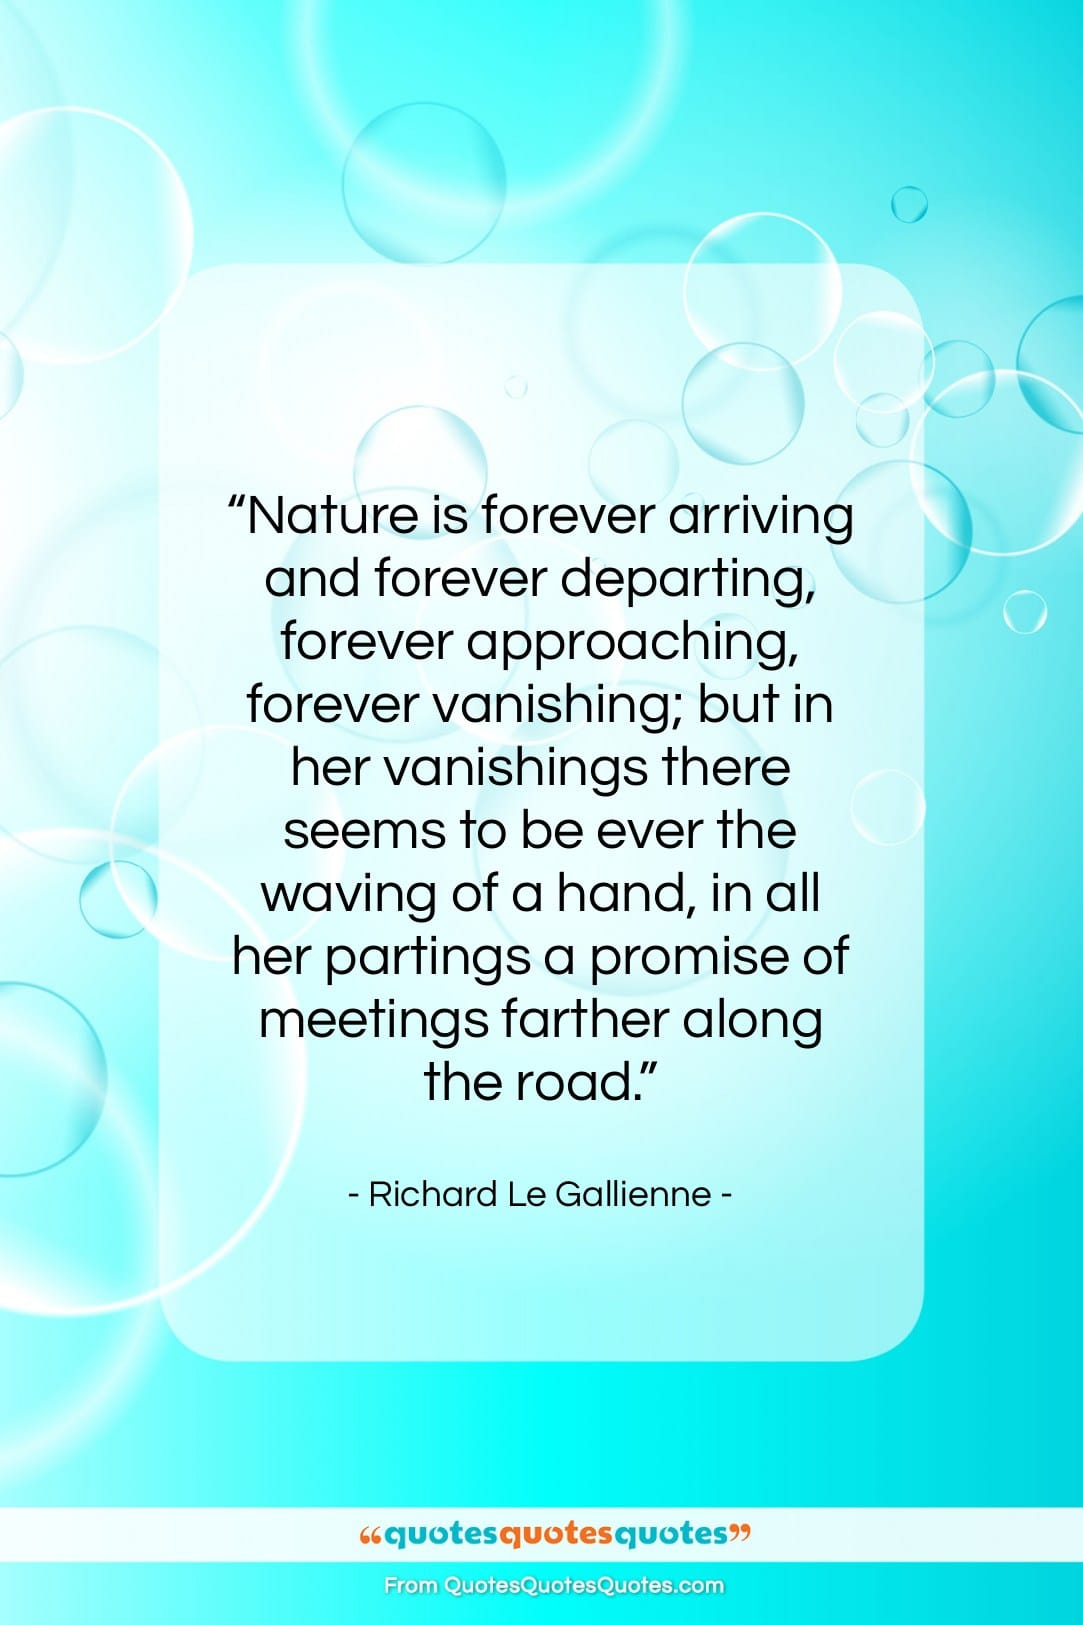 """Richard Le Gallienne quote: """"Nature is forever arriving and forever departing,…""""- at QuotesQuotesQuotes.com"""